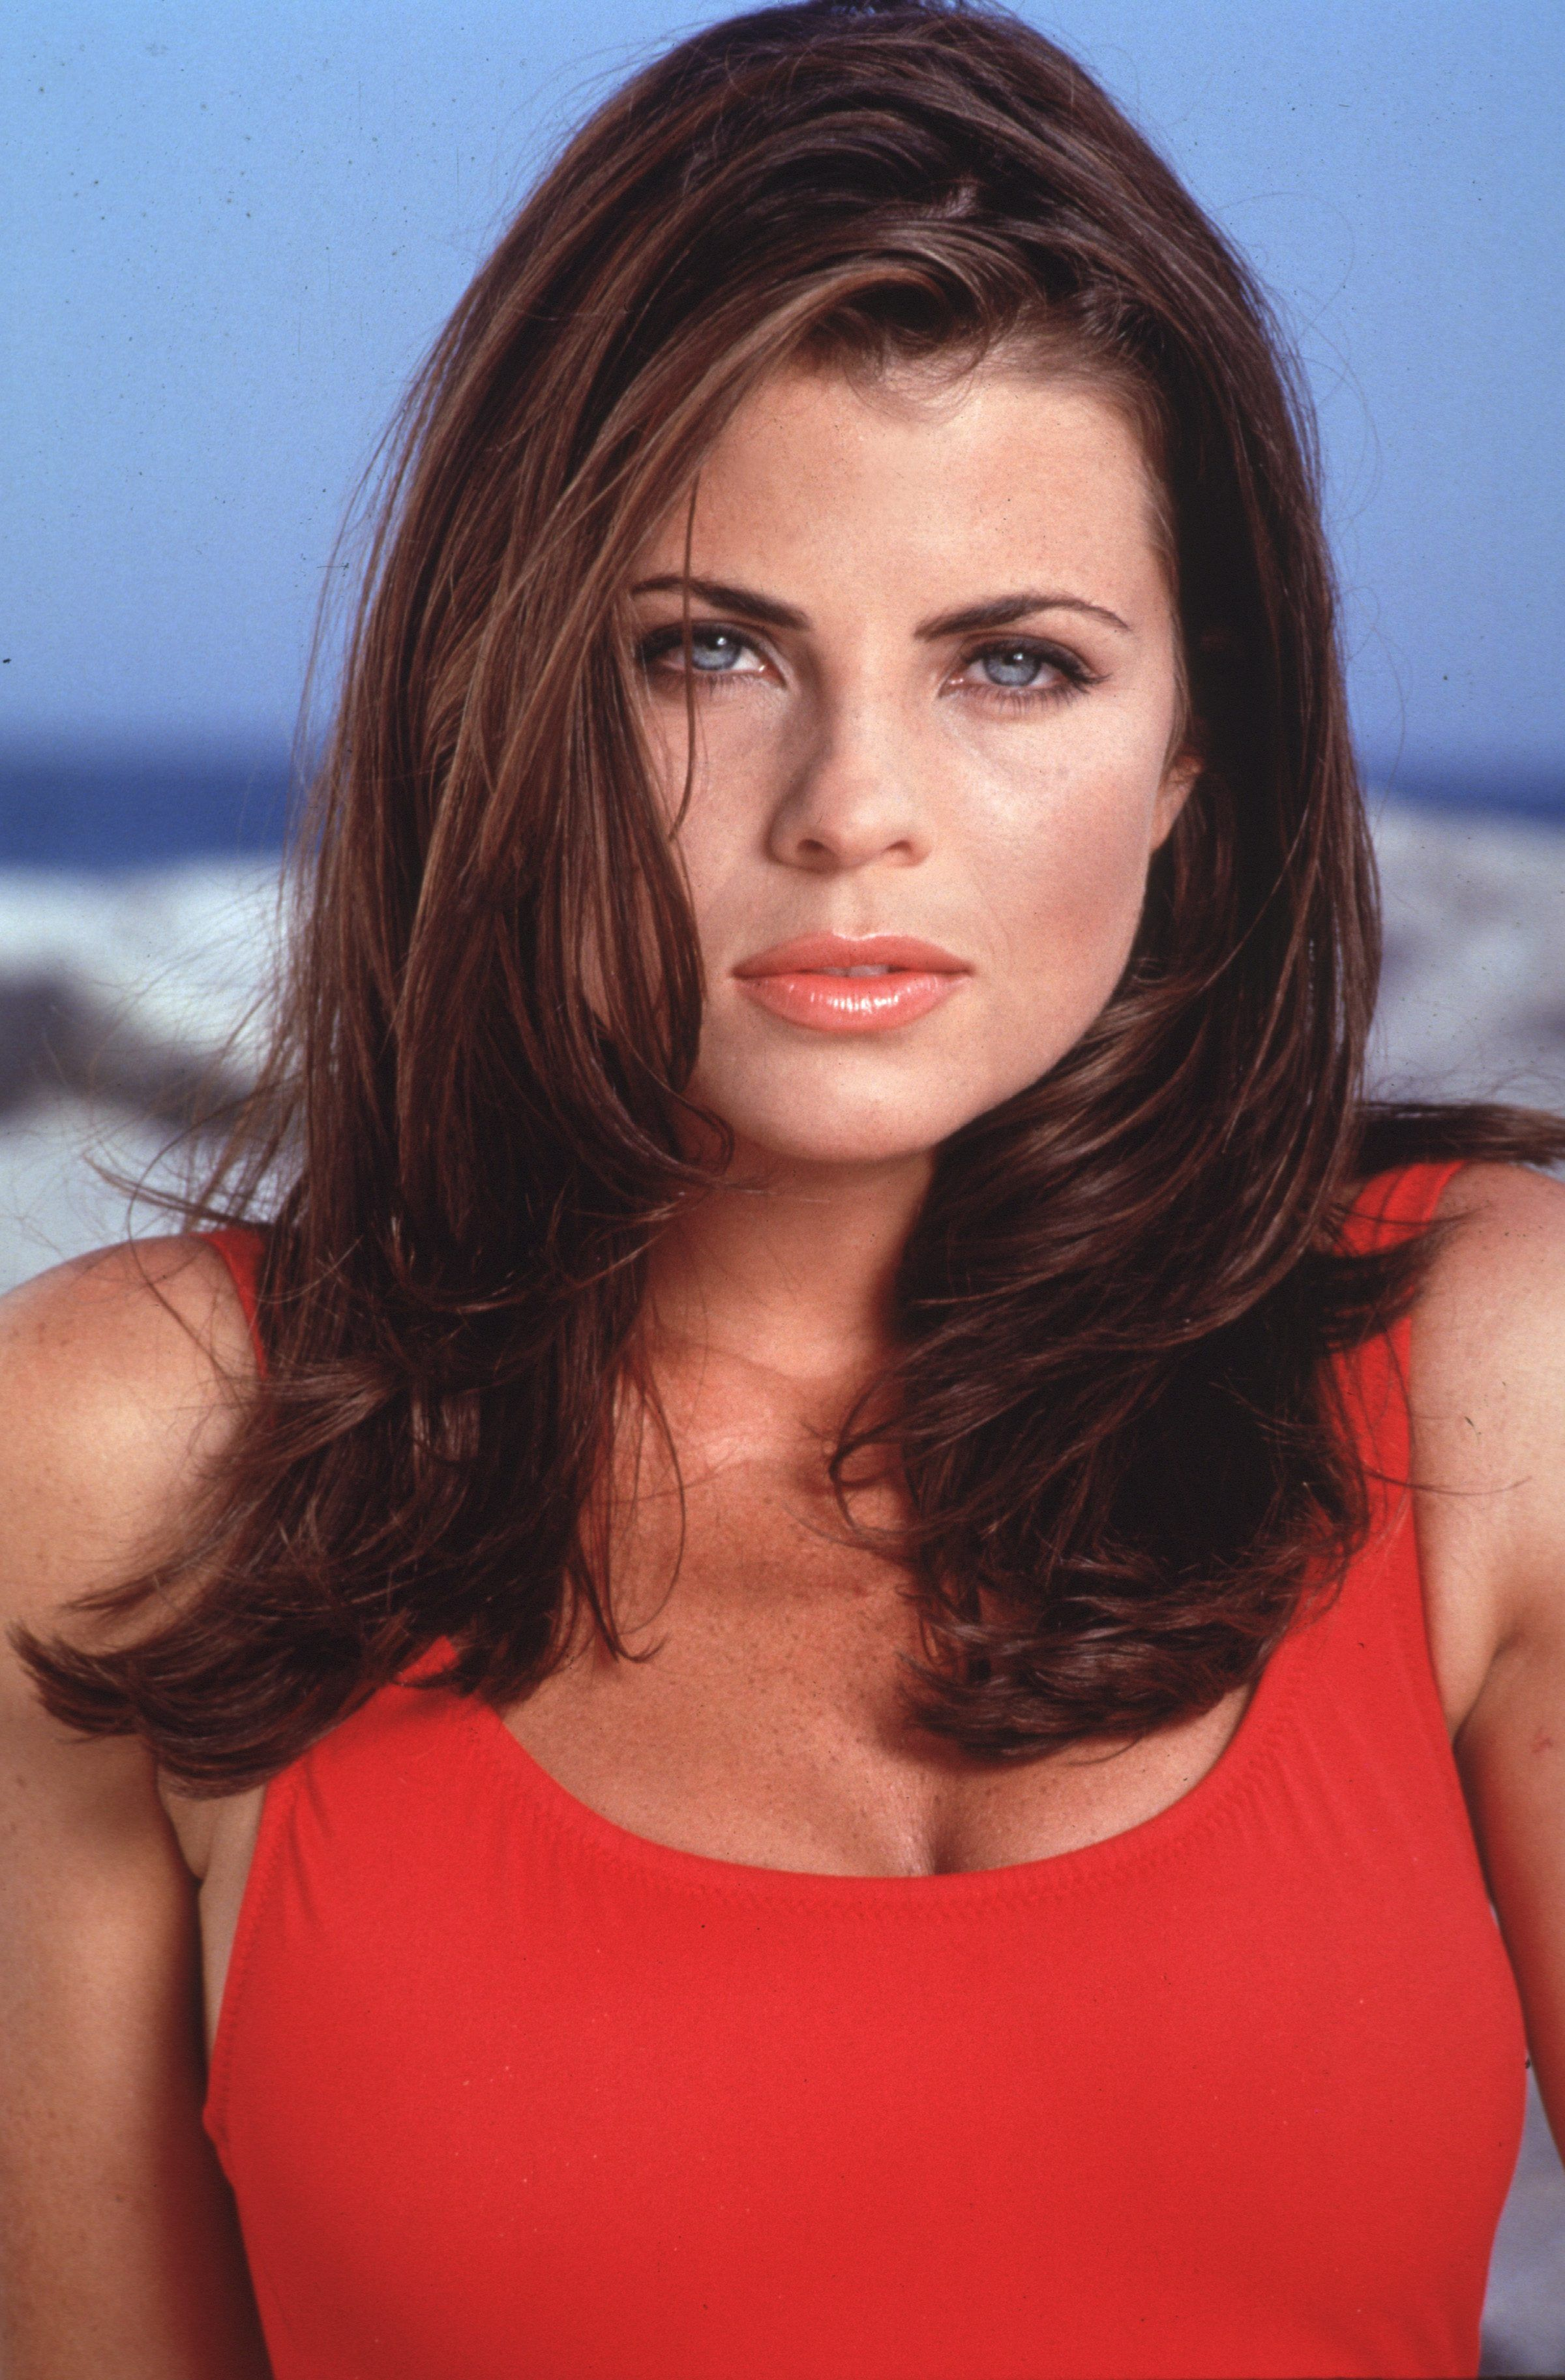 Yasmine Bleeth naked (48 photo), Tits, Fappening, Boobs, swimsuit 2020